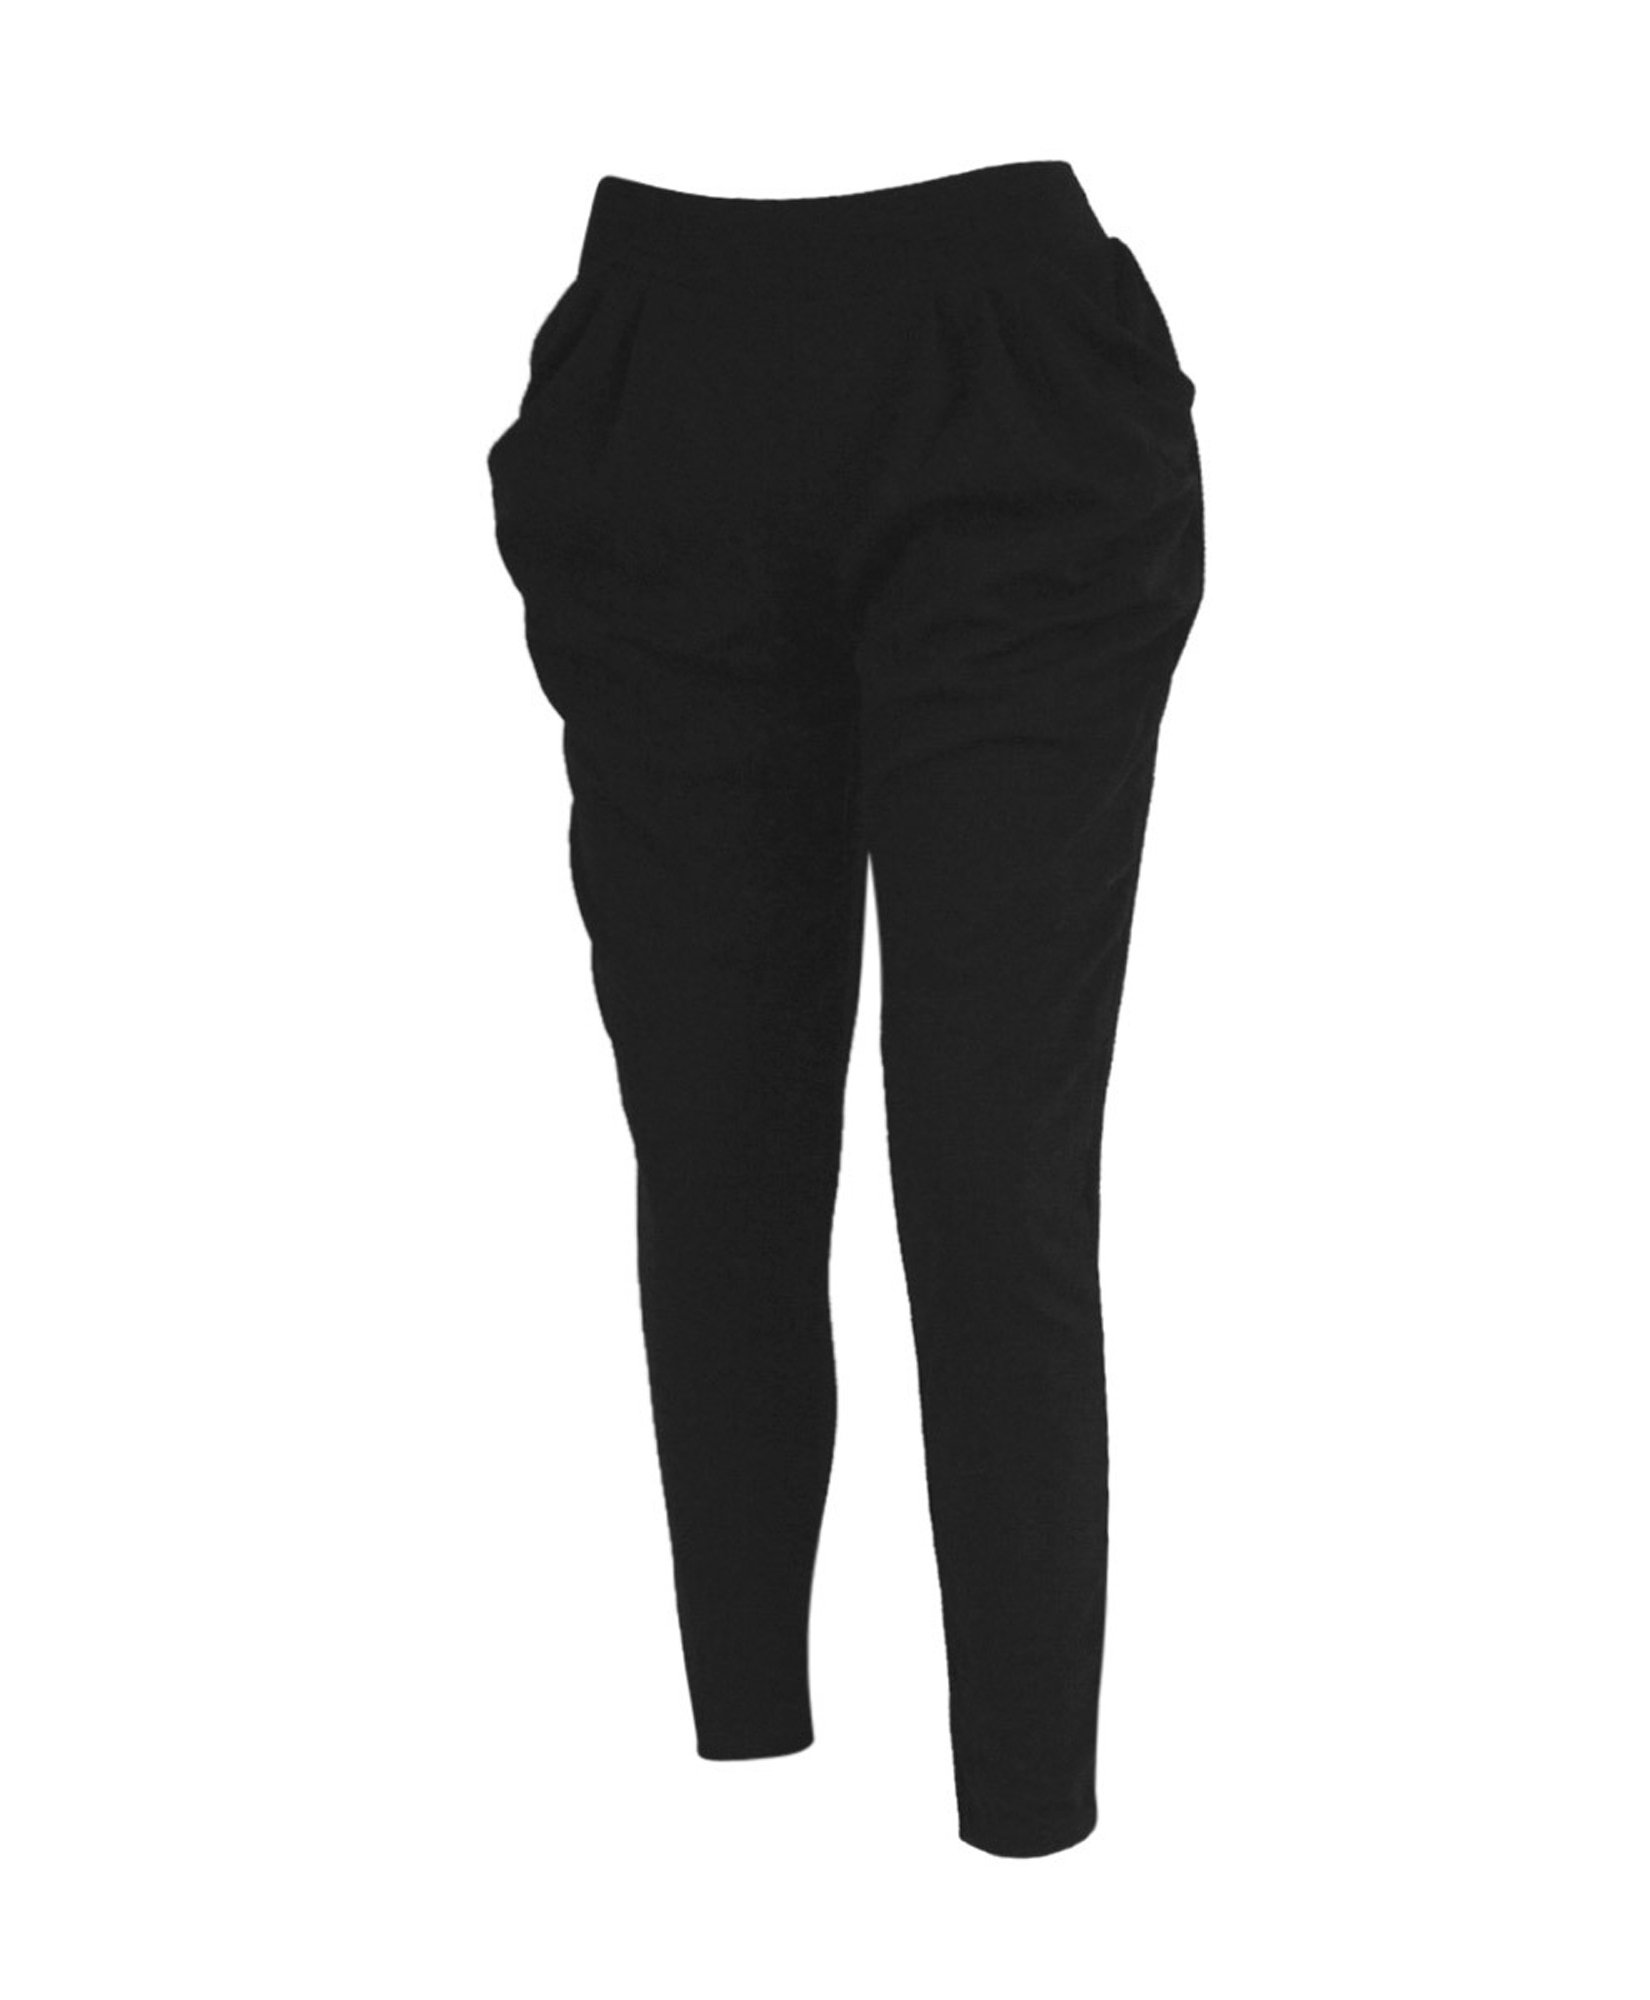 All Black Slouchy Pants (S/M)